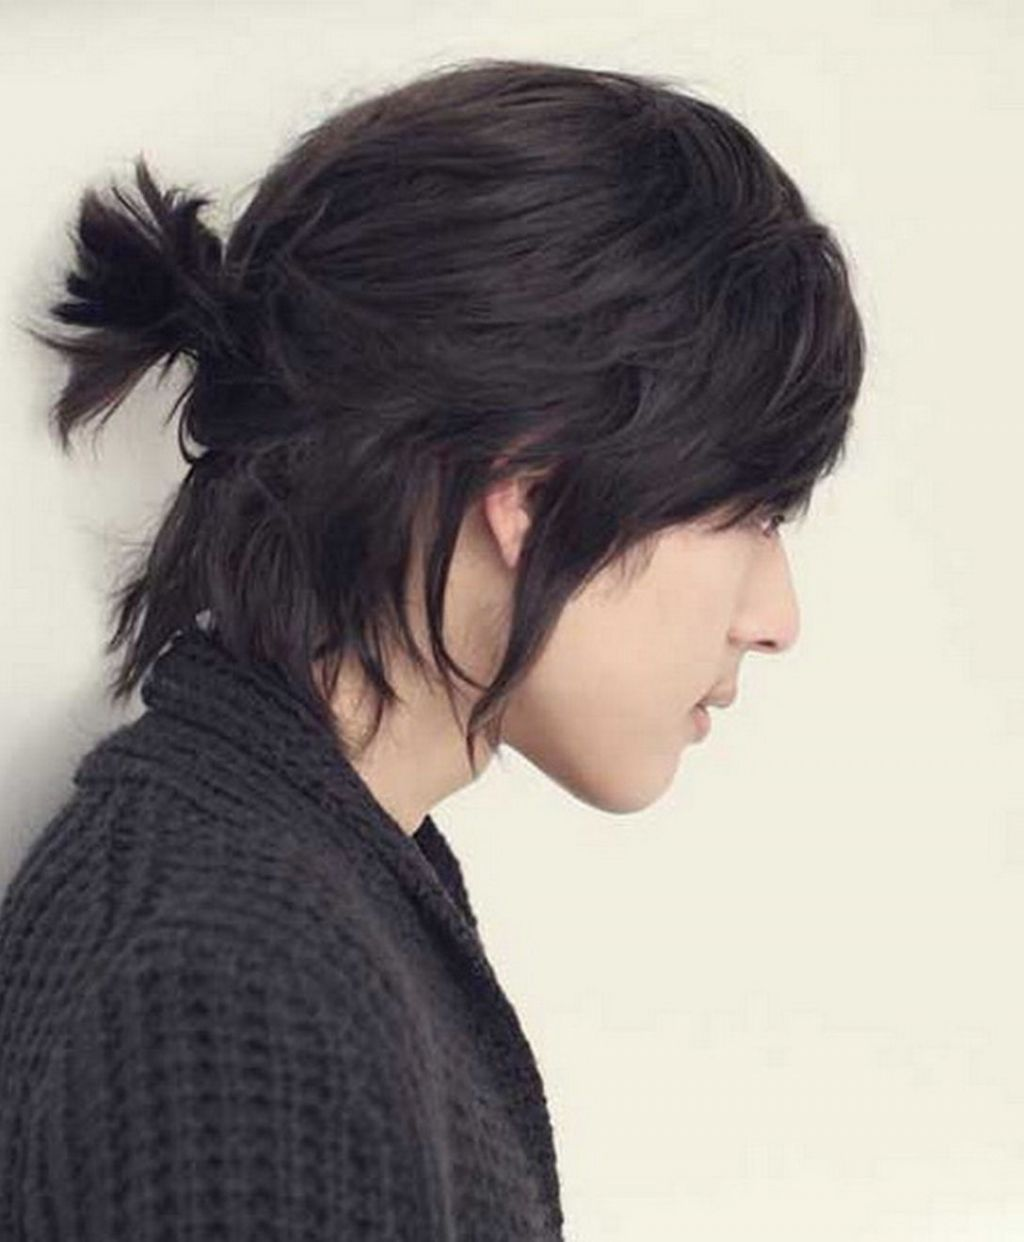 Asian Hair Style Guys by wearticles.com